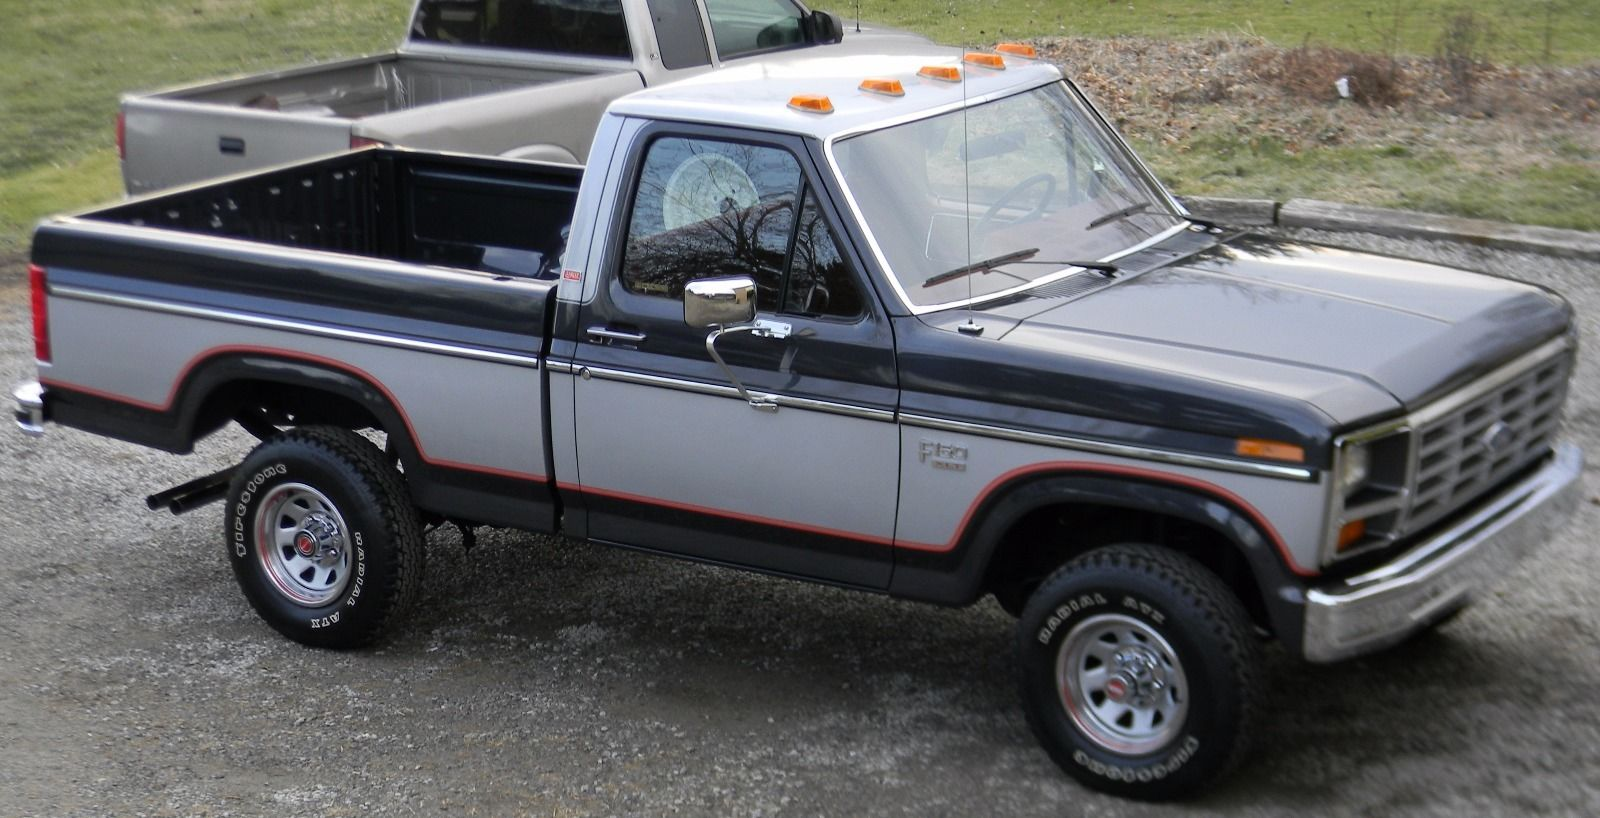 2015 Ford F 150 For Sale >> 1985 Ford F 150 XLT Lariat for sale